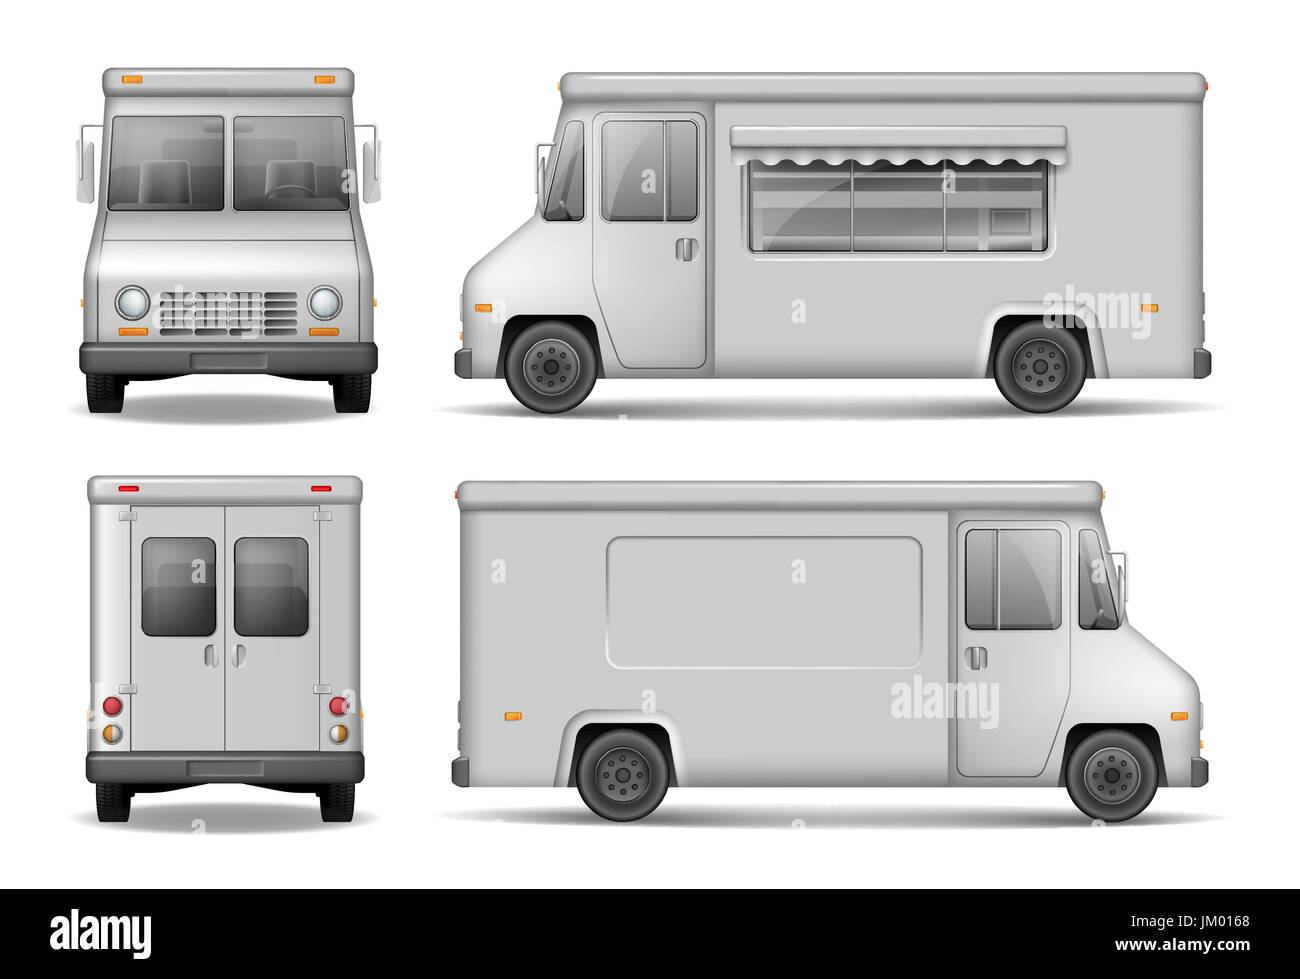 Food Truck Vector Template For Car Advertising. Service Delivery Van Isolated On White. Silver Delivery Truck from Stock Vector